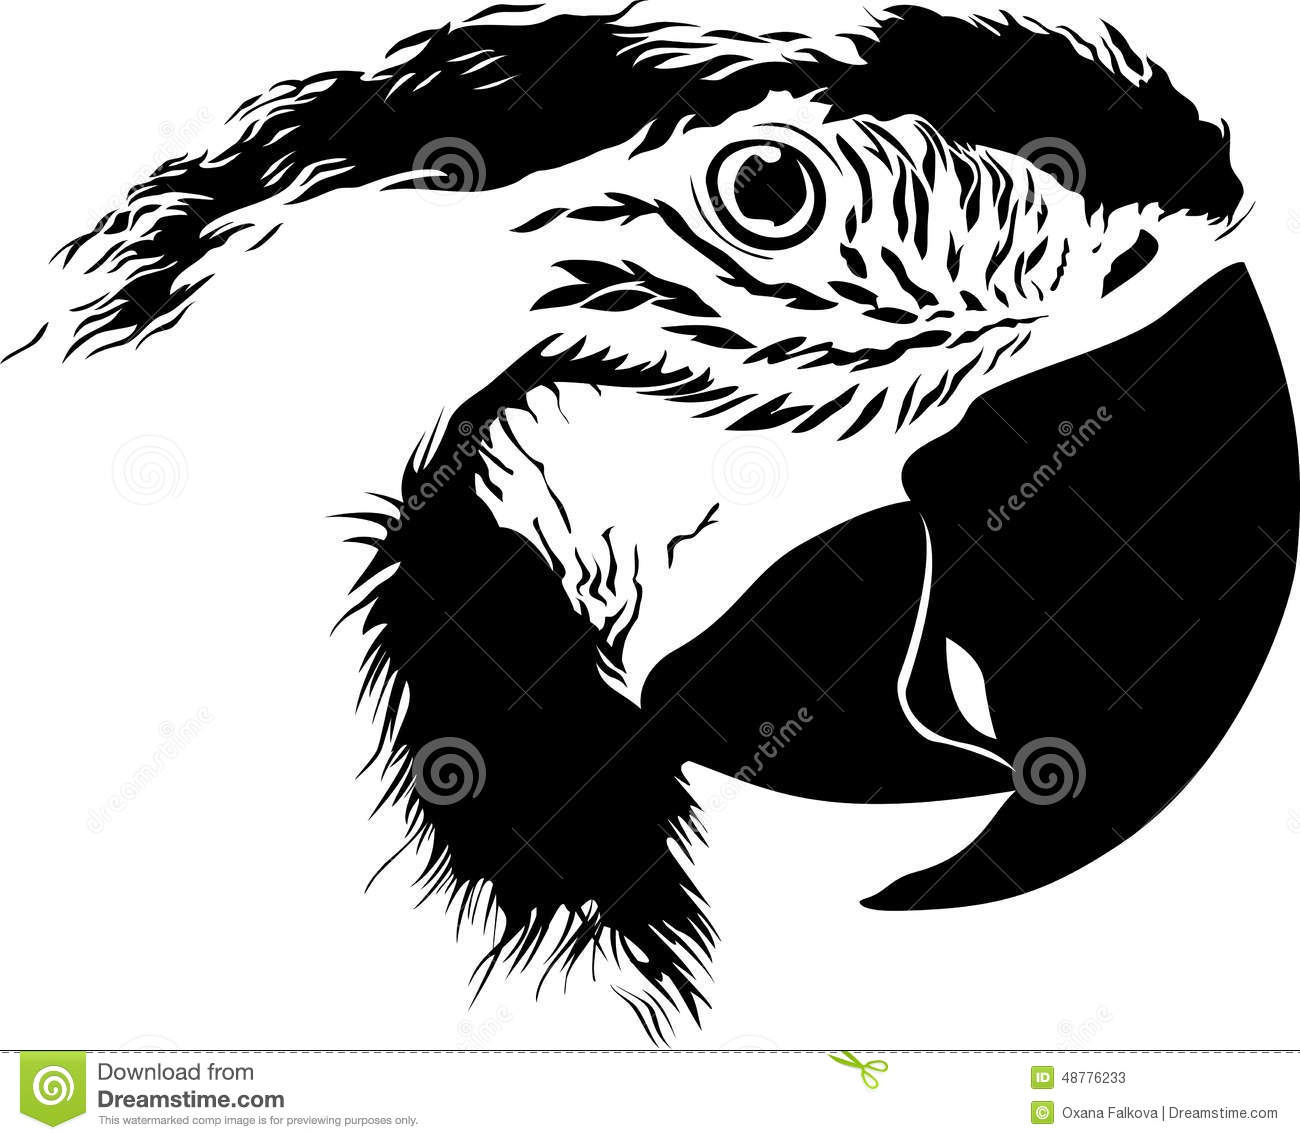 Parrot stock vector. Illustration of contour, isolated ...